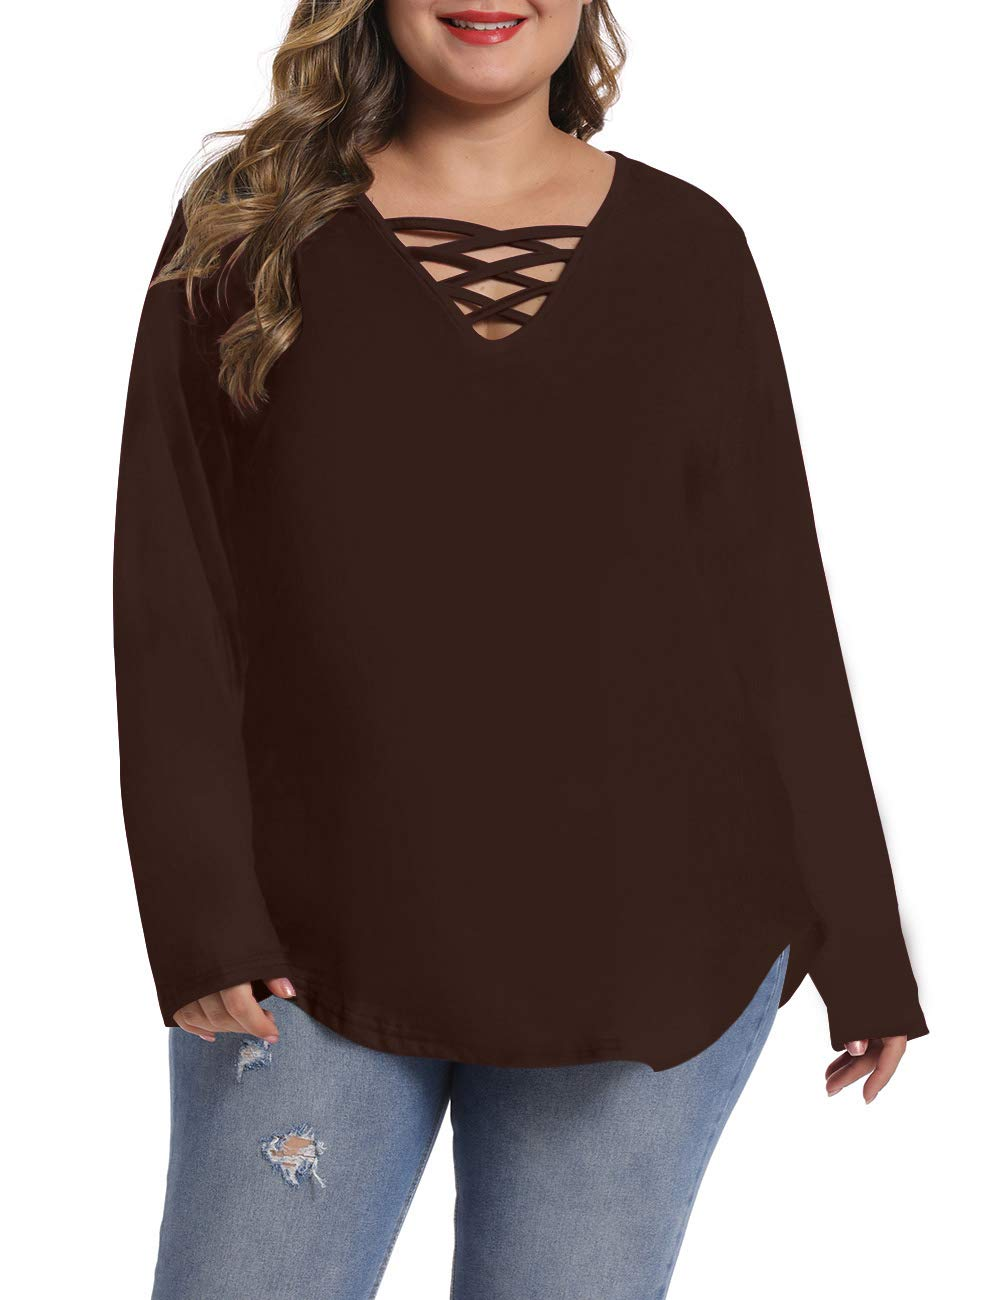 caidyny Womens Plus-Size Sexy V-Neck Tops, Causal Long Sleeve Soild Color Tunic Shirts(Dark Brown, 3XL)